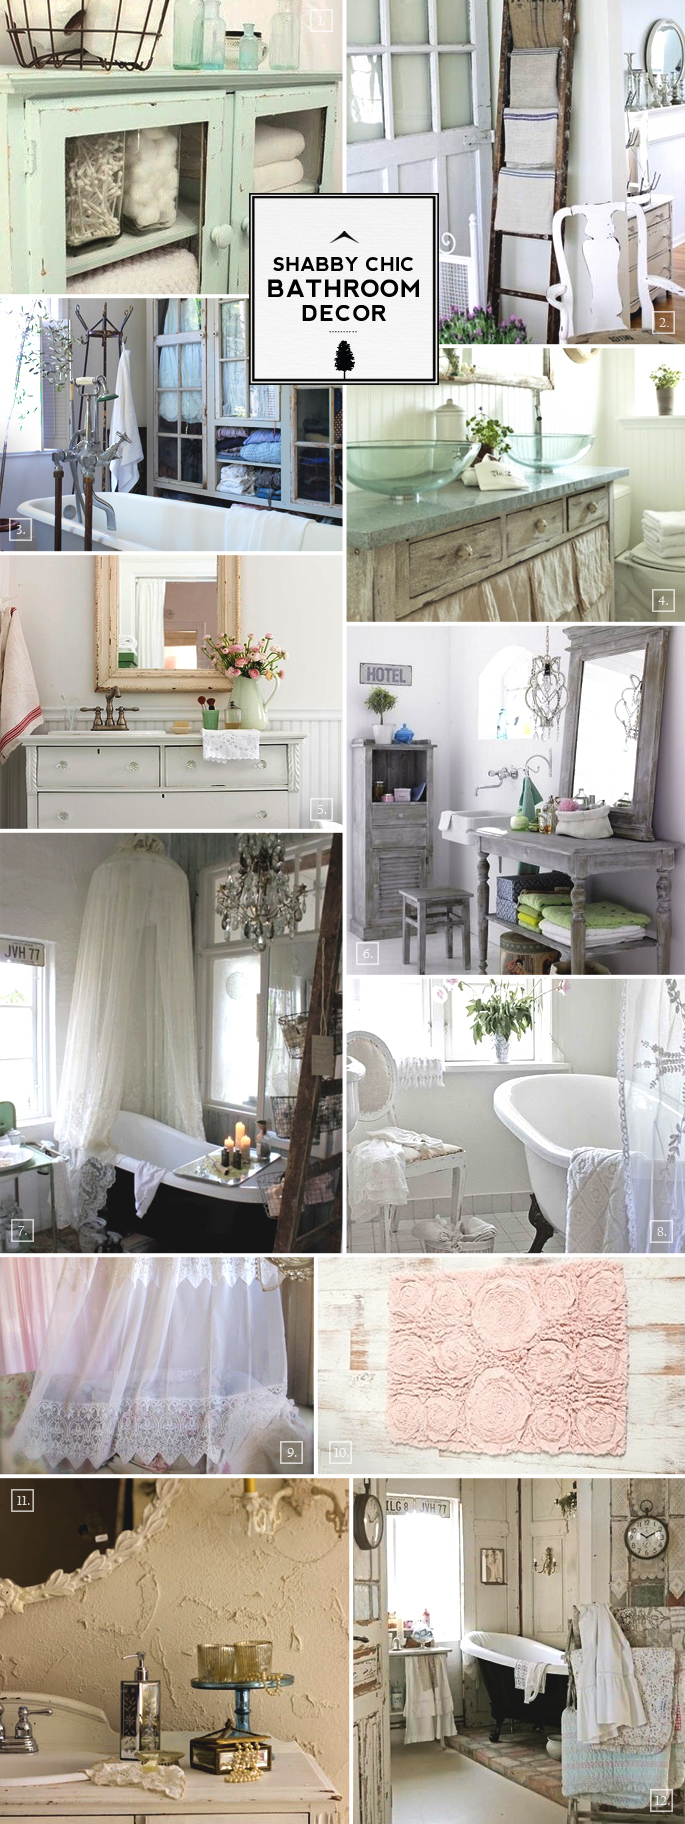 Shabby Chic Bathroom Ideas And Decor Designs Home Tree Atlas